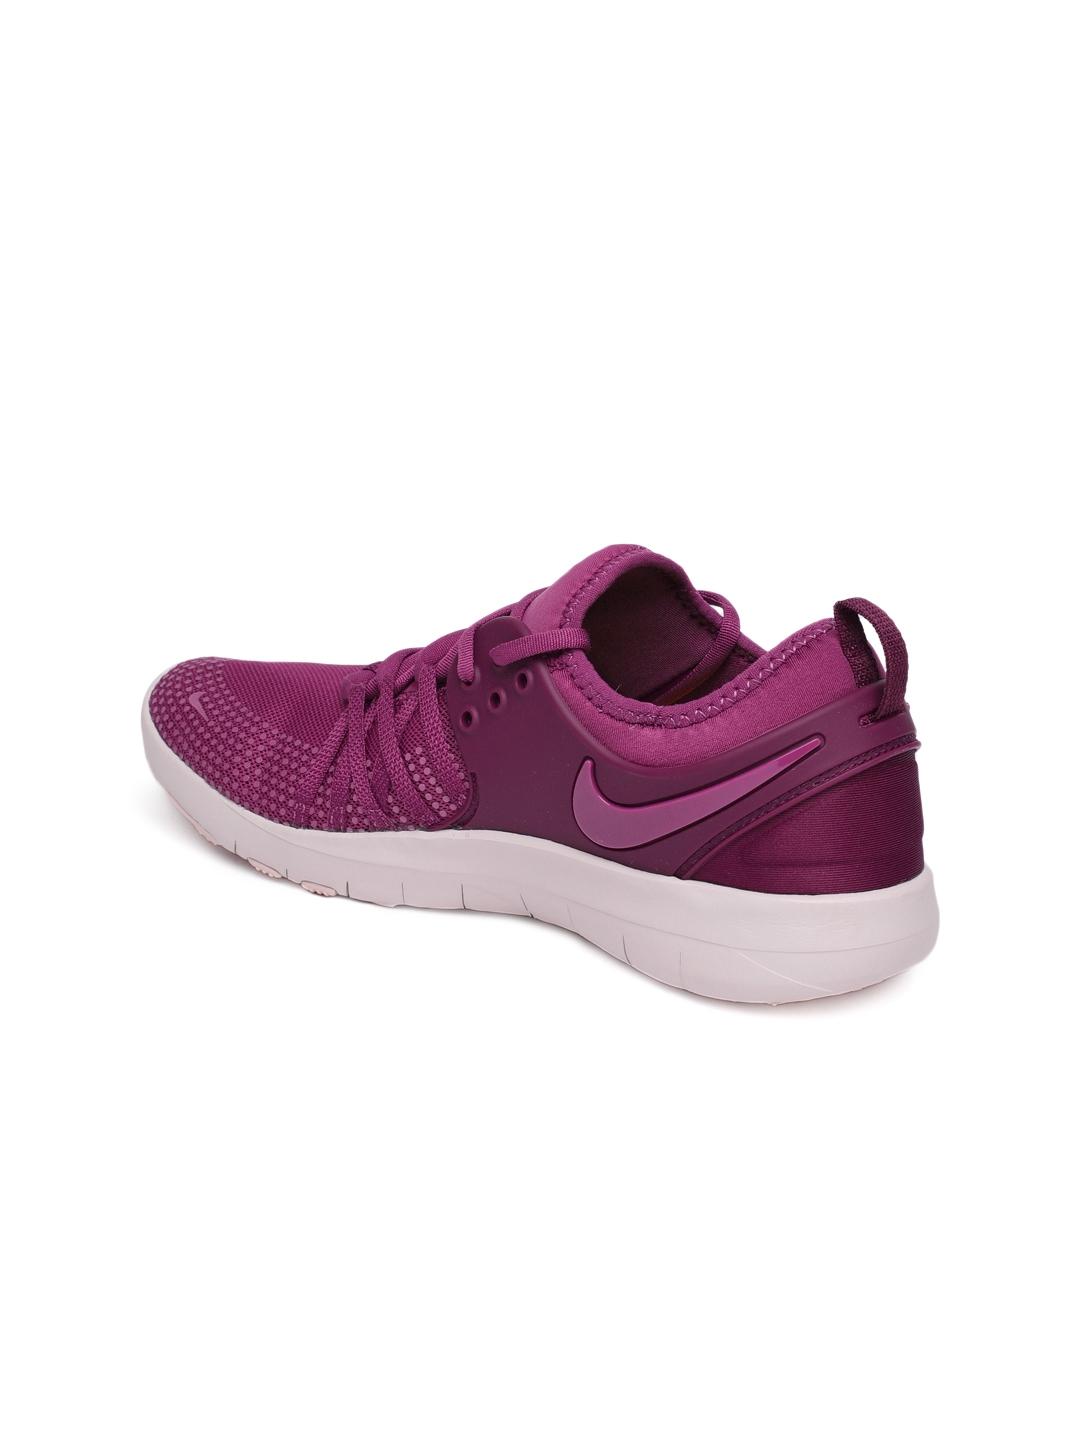 reputable site f9672 60db1 Nike Women Purple Free TR 7 Training Shoes